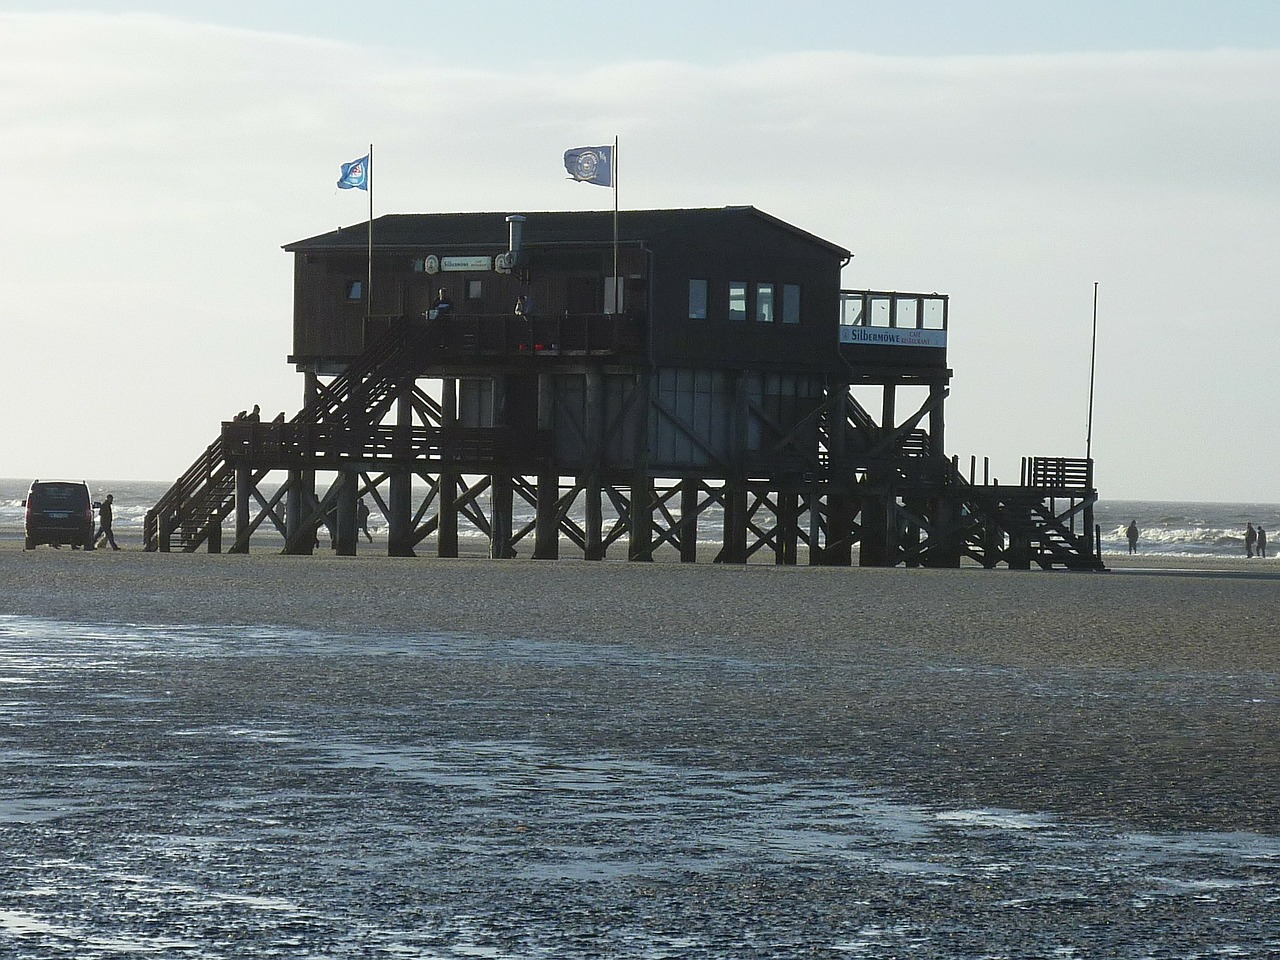 st peter obi watts wadden sea free photo